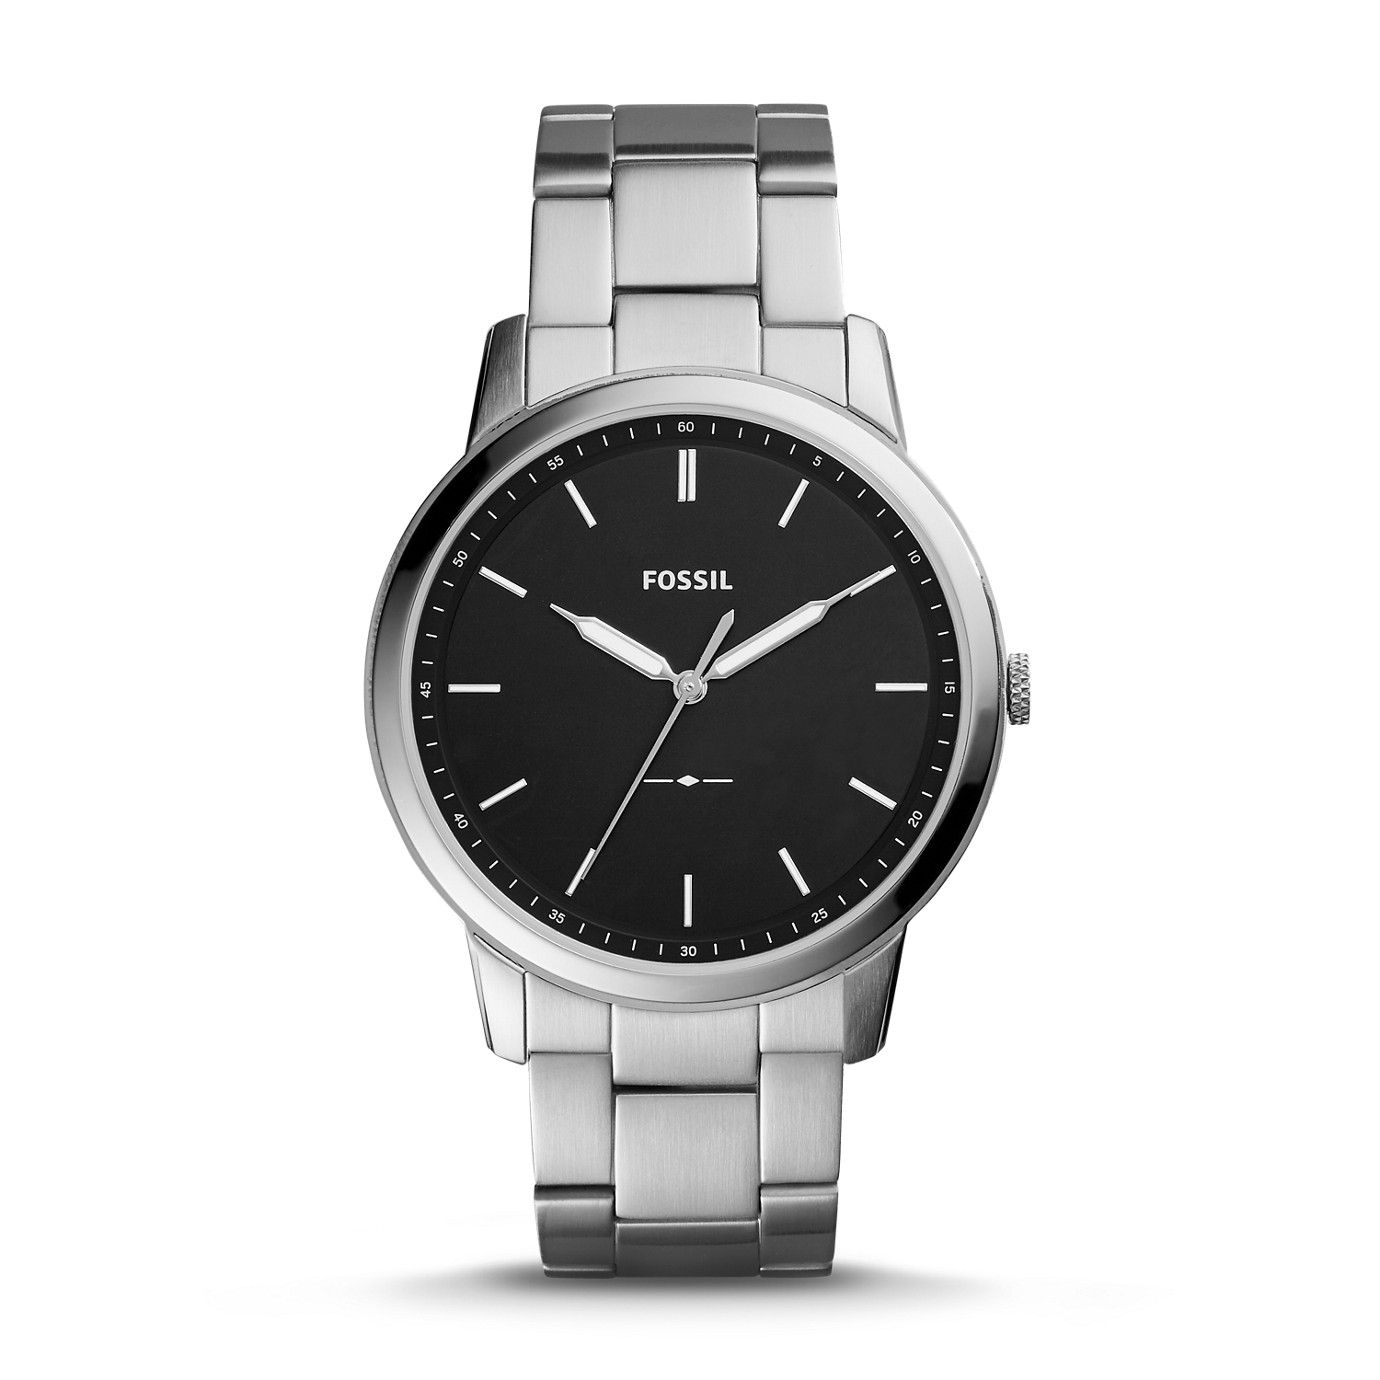 The Minimalist Three-Hand Stainless Steel Watch